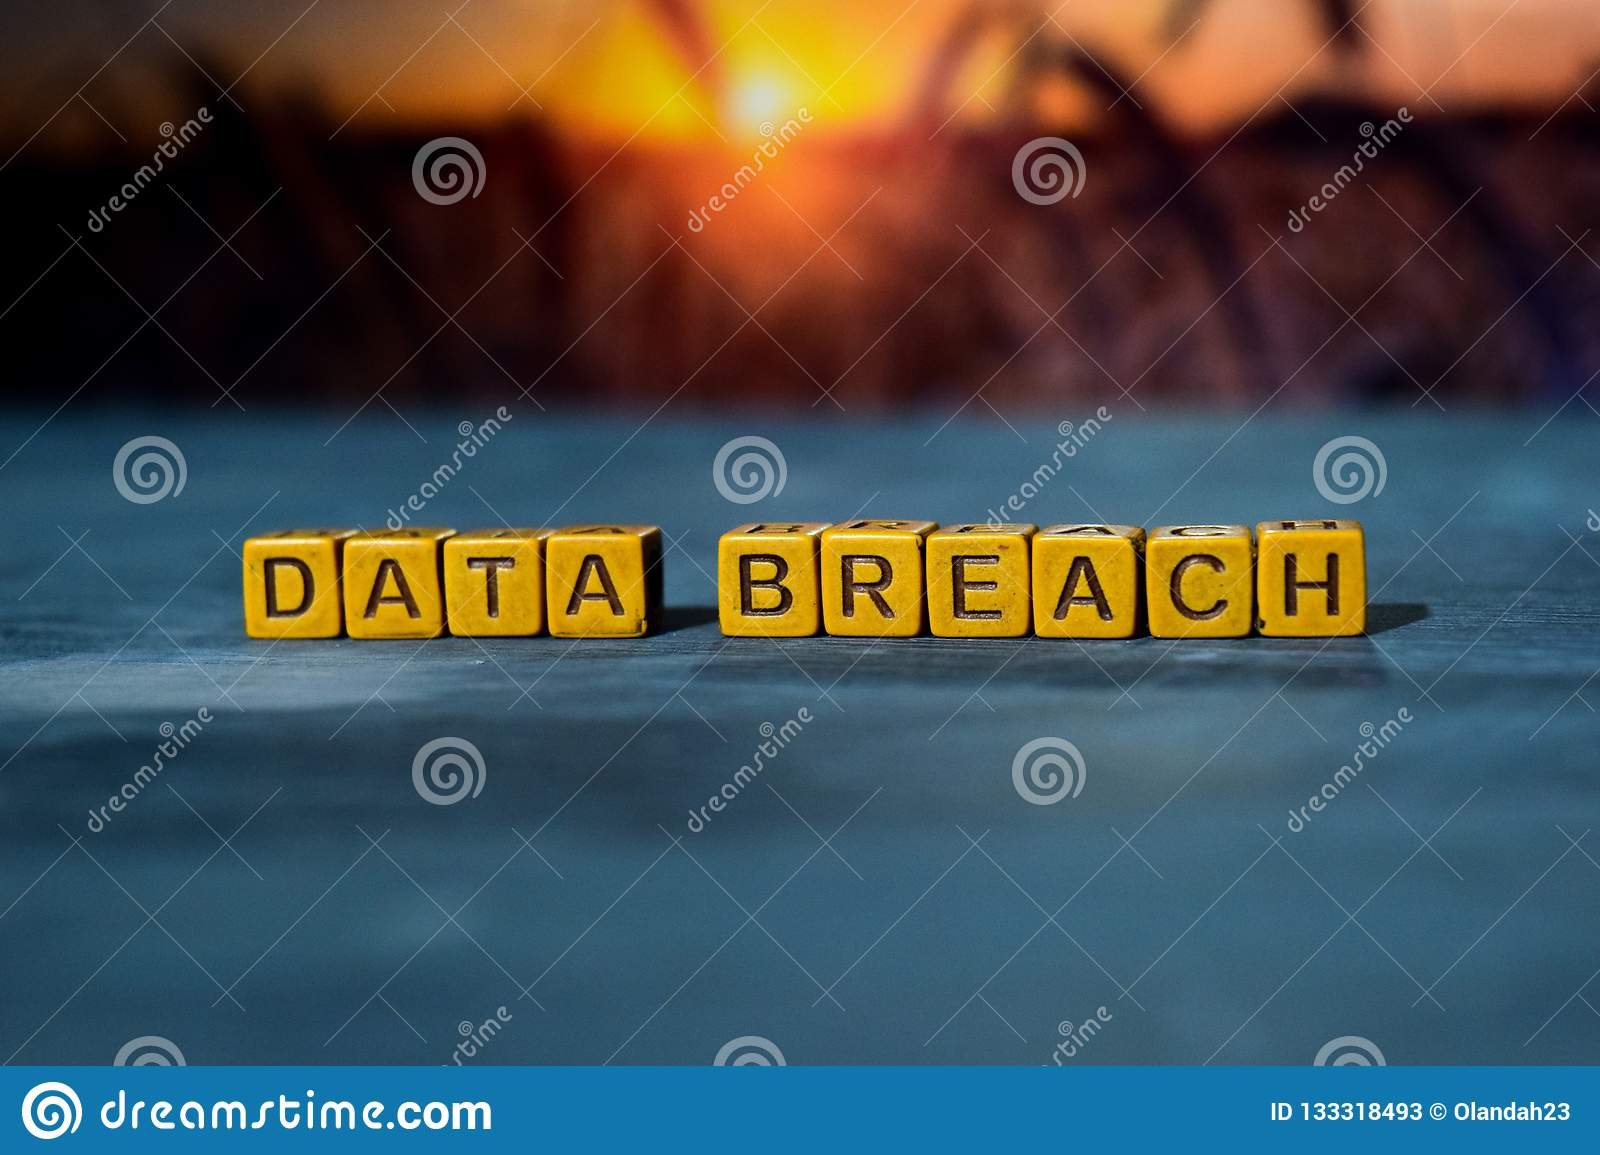 Data breach on wooden blocks. Cross processed image with bokeh background